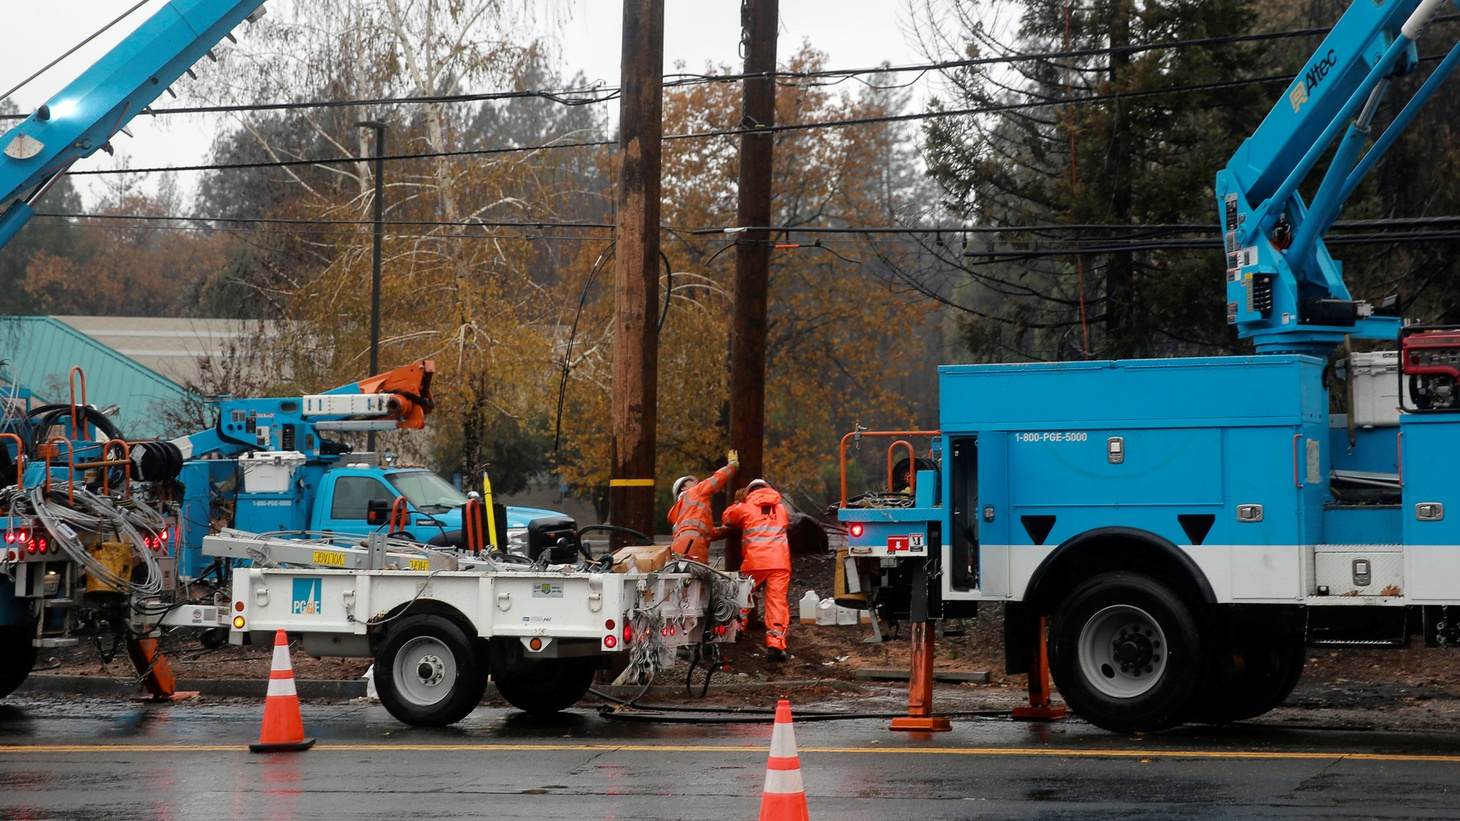 PG&E works on power lines to repair damage caused by the Camp Fire in Paradise, California, U.S. November 21, 2018.